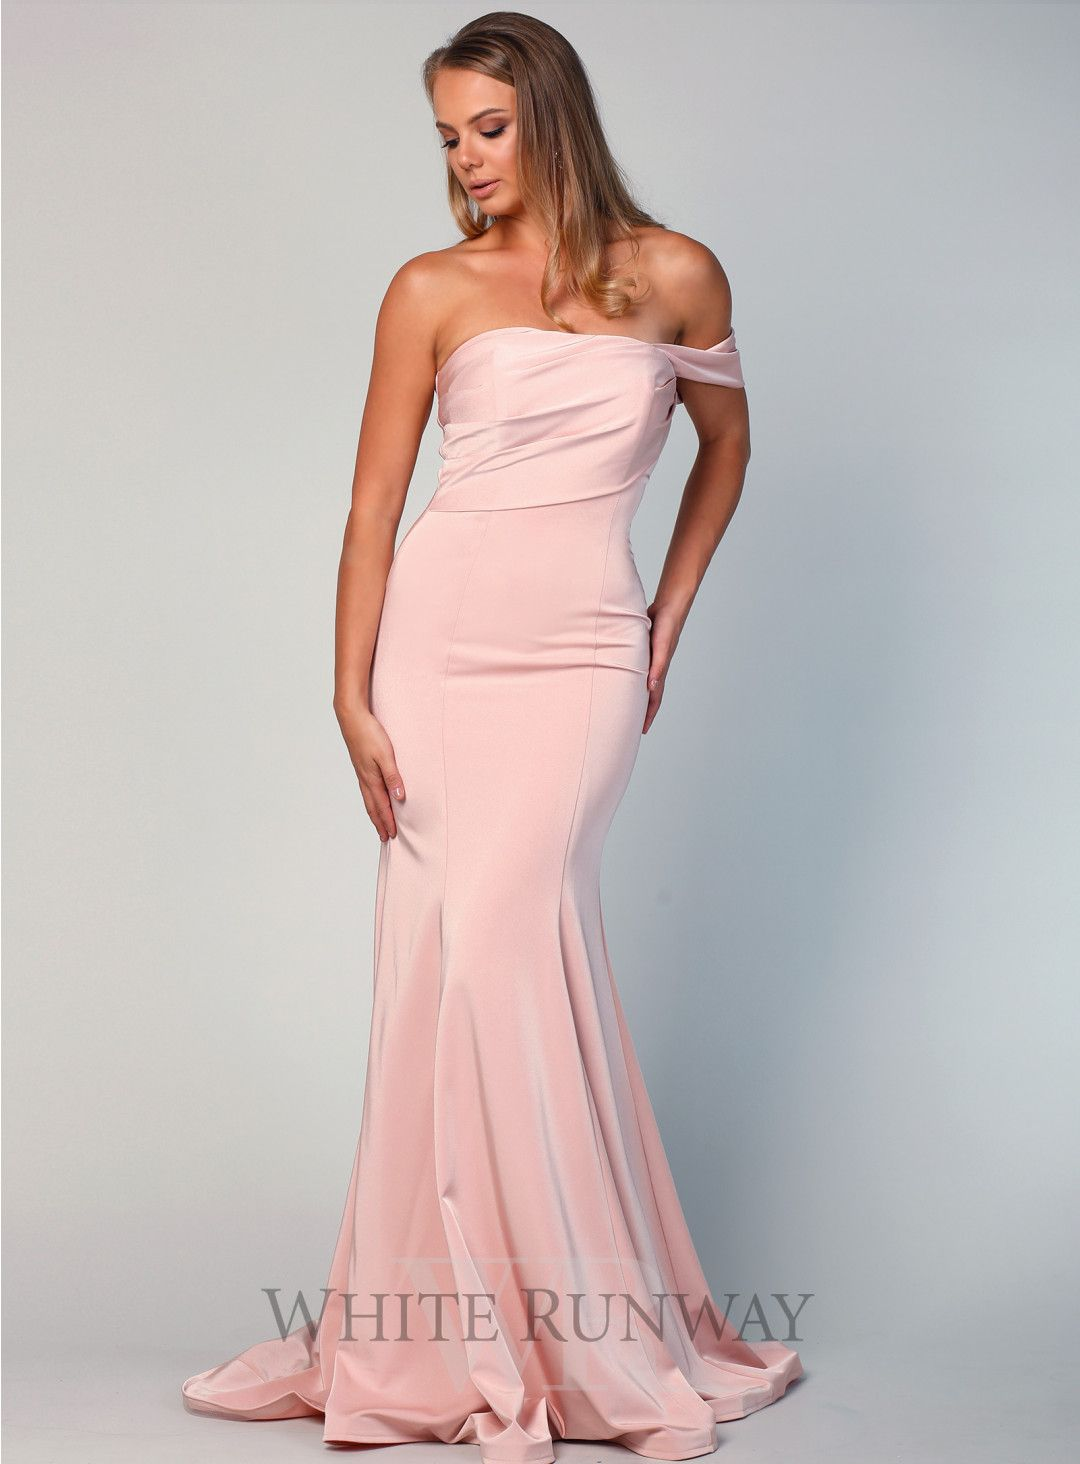 78bb9f6f9e Leila Gown. A beautiful full length gown by Tinaholy. A fitted style  featuring ruched detailing in the bust and comes with small train.